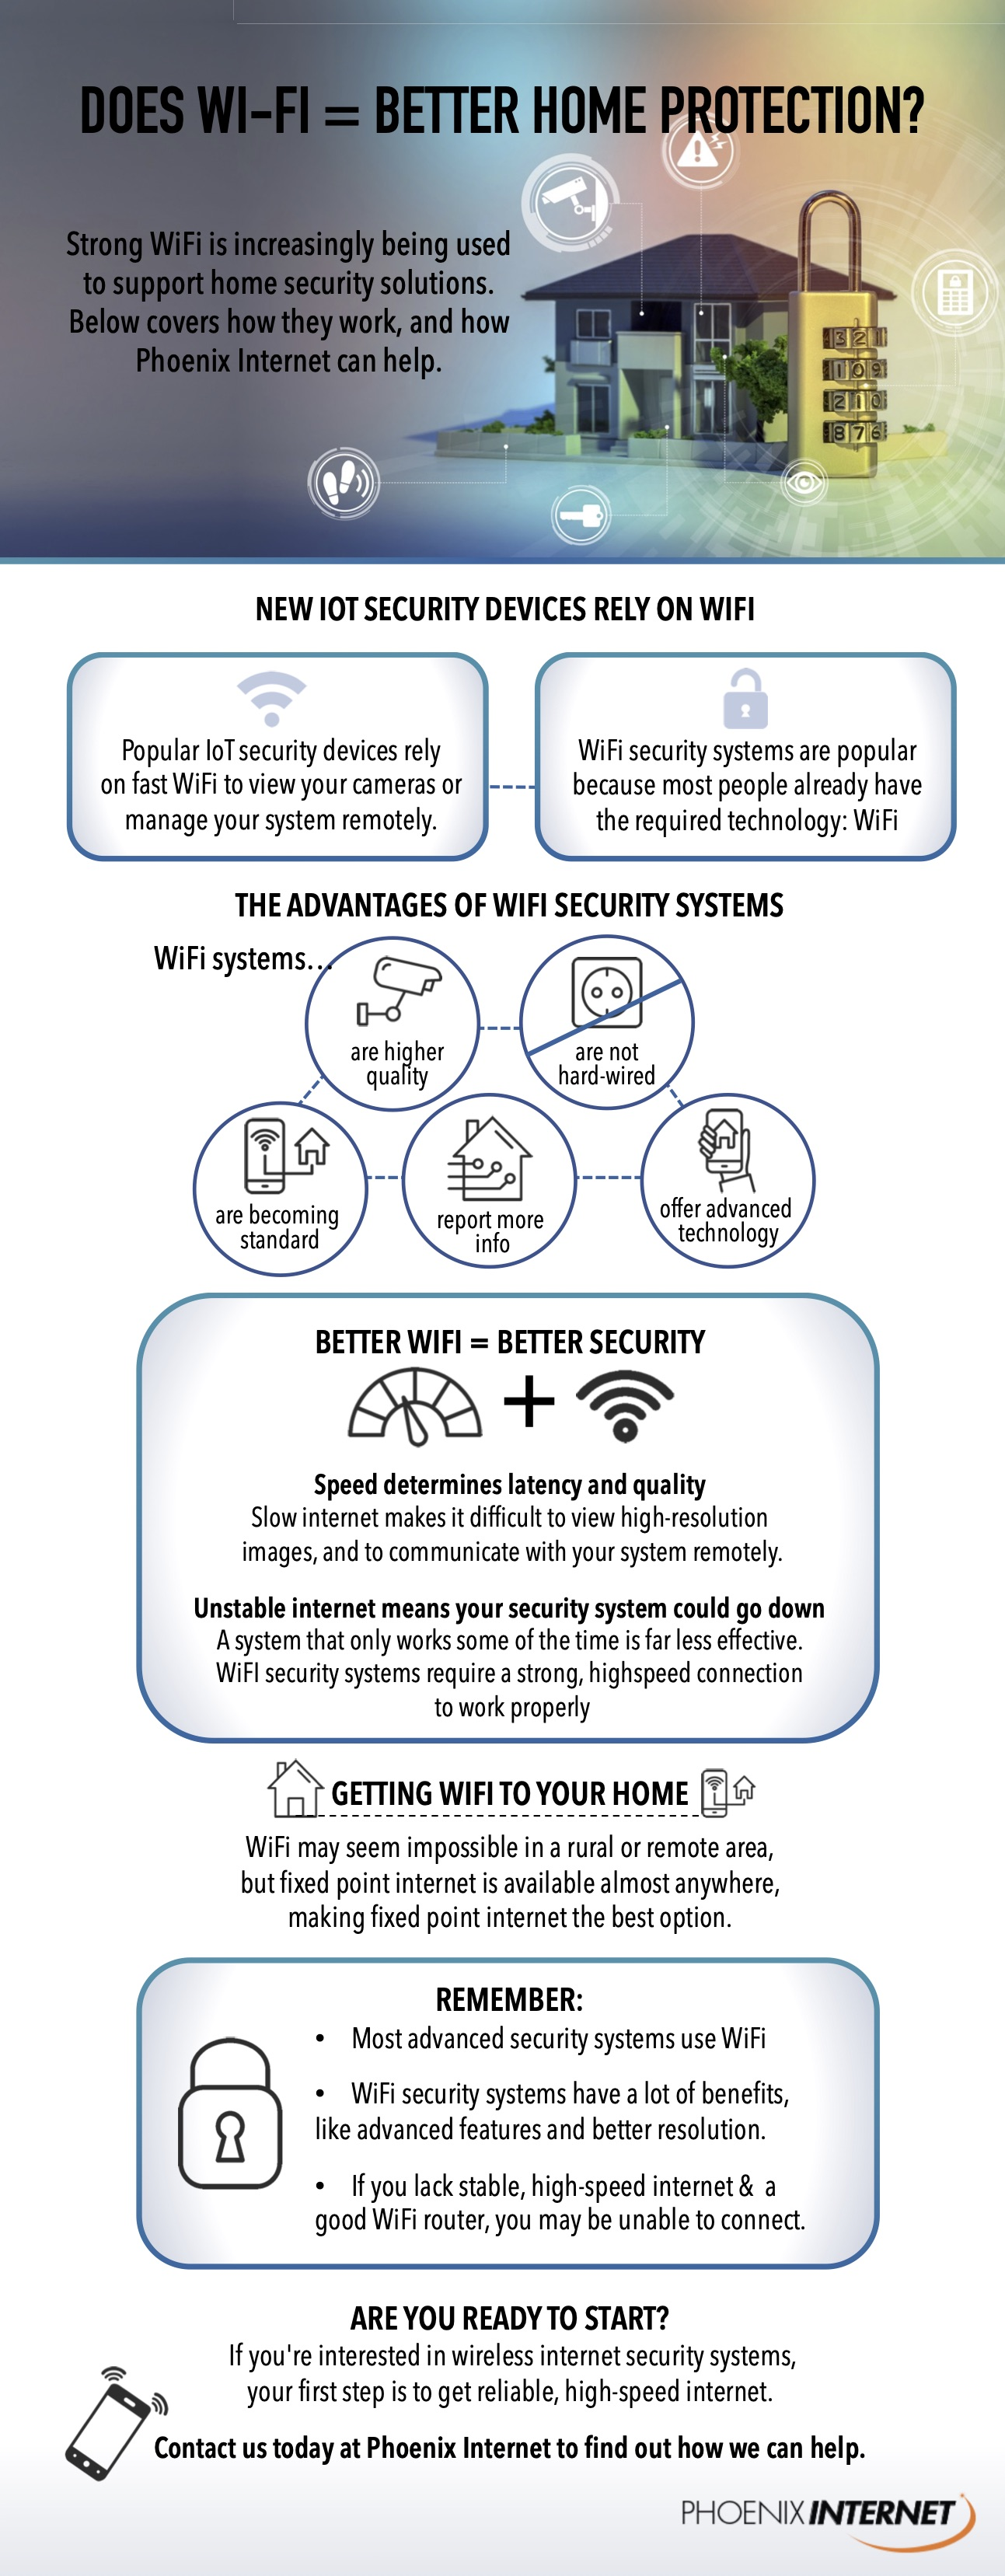 WiFi home protection, wireless security, WiFi security